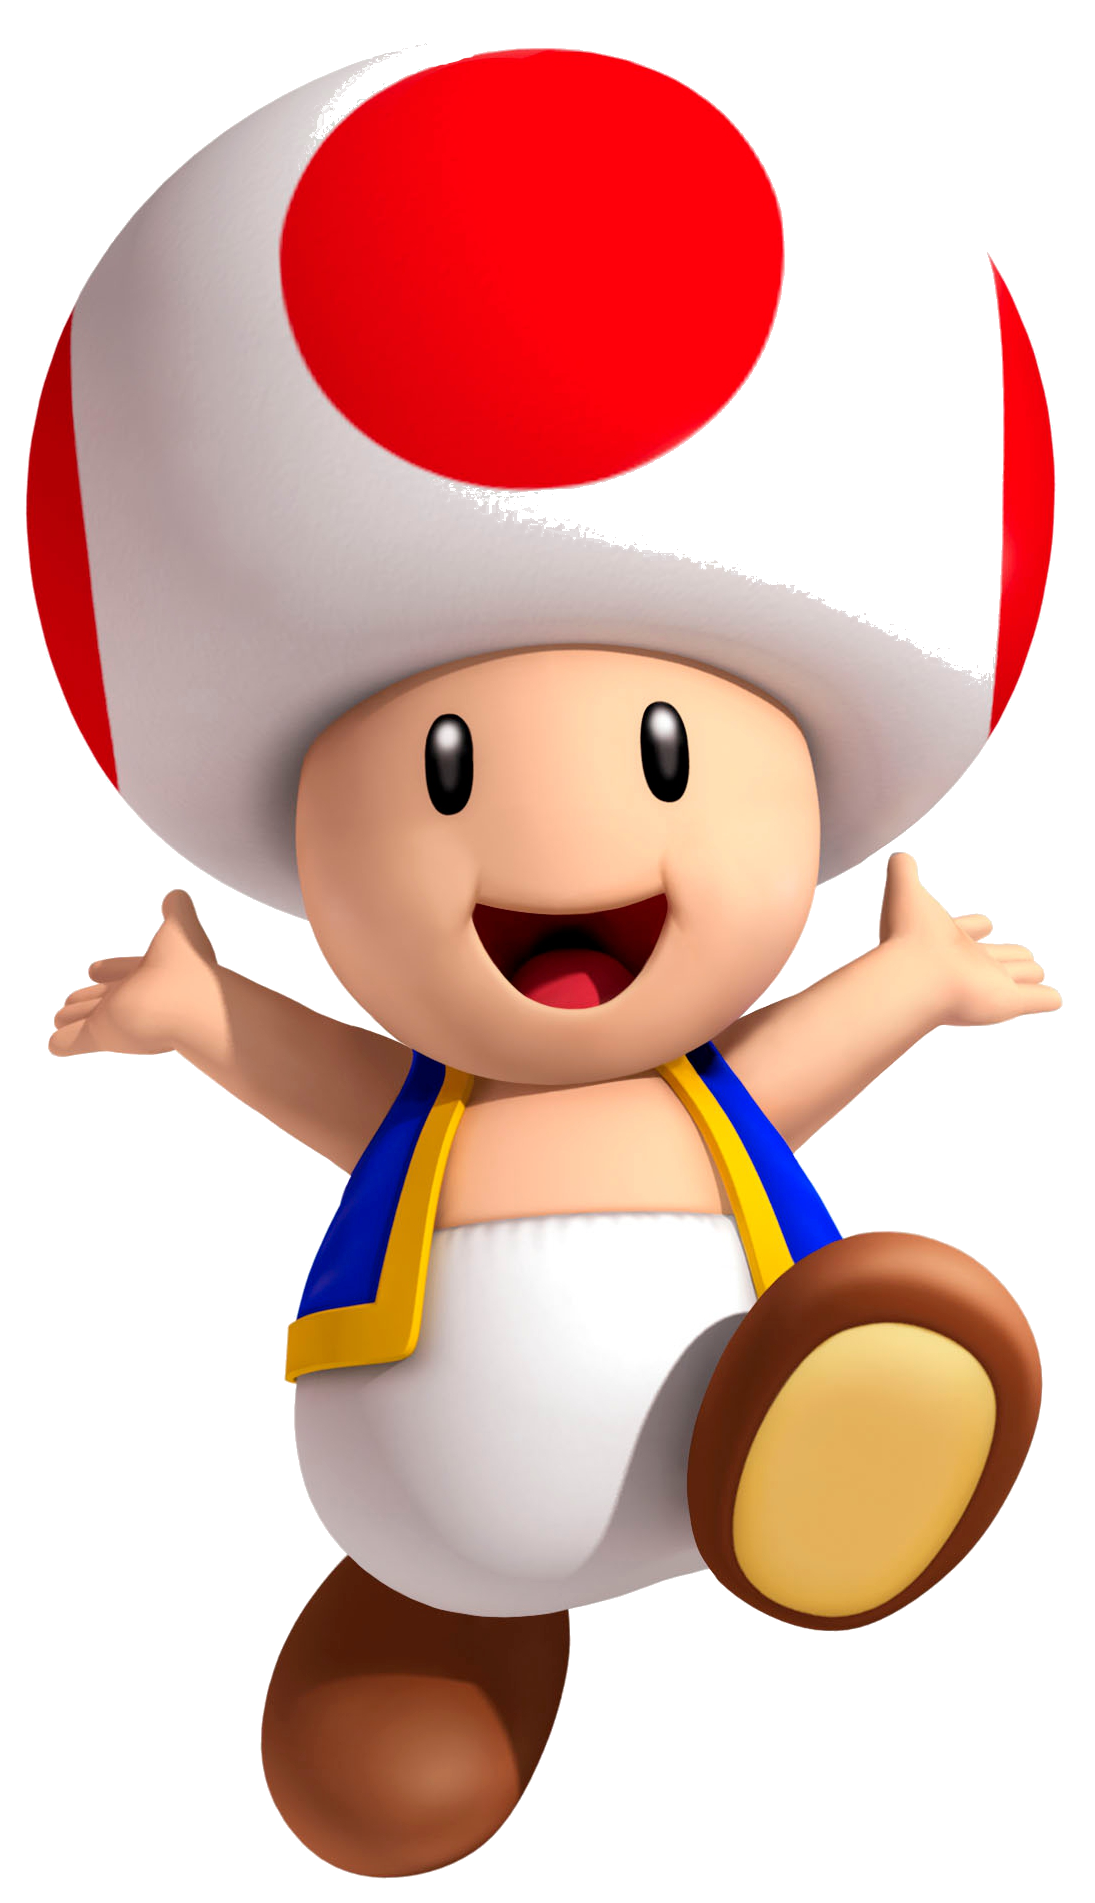 Toad Logo Mario Transparent Png Clipart Free Download Ywd